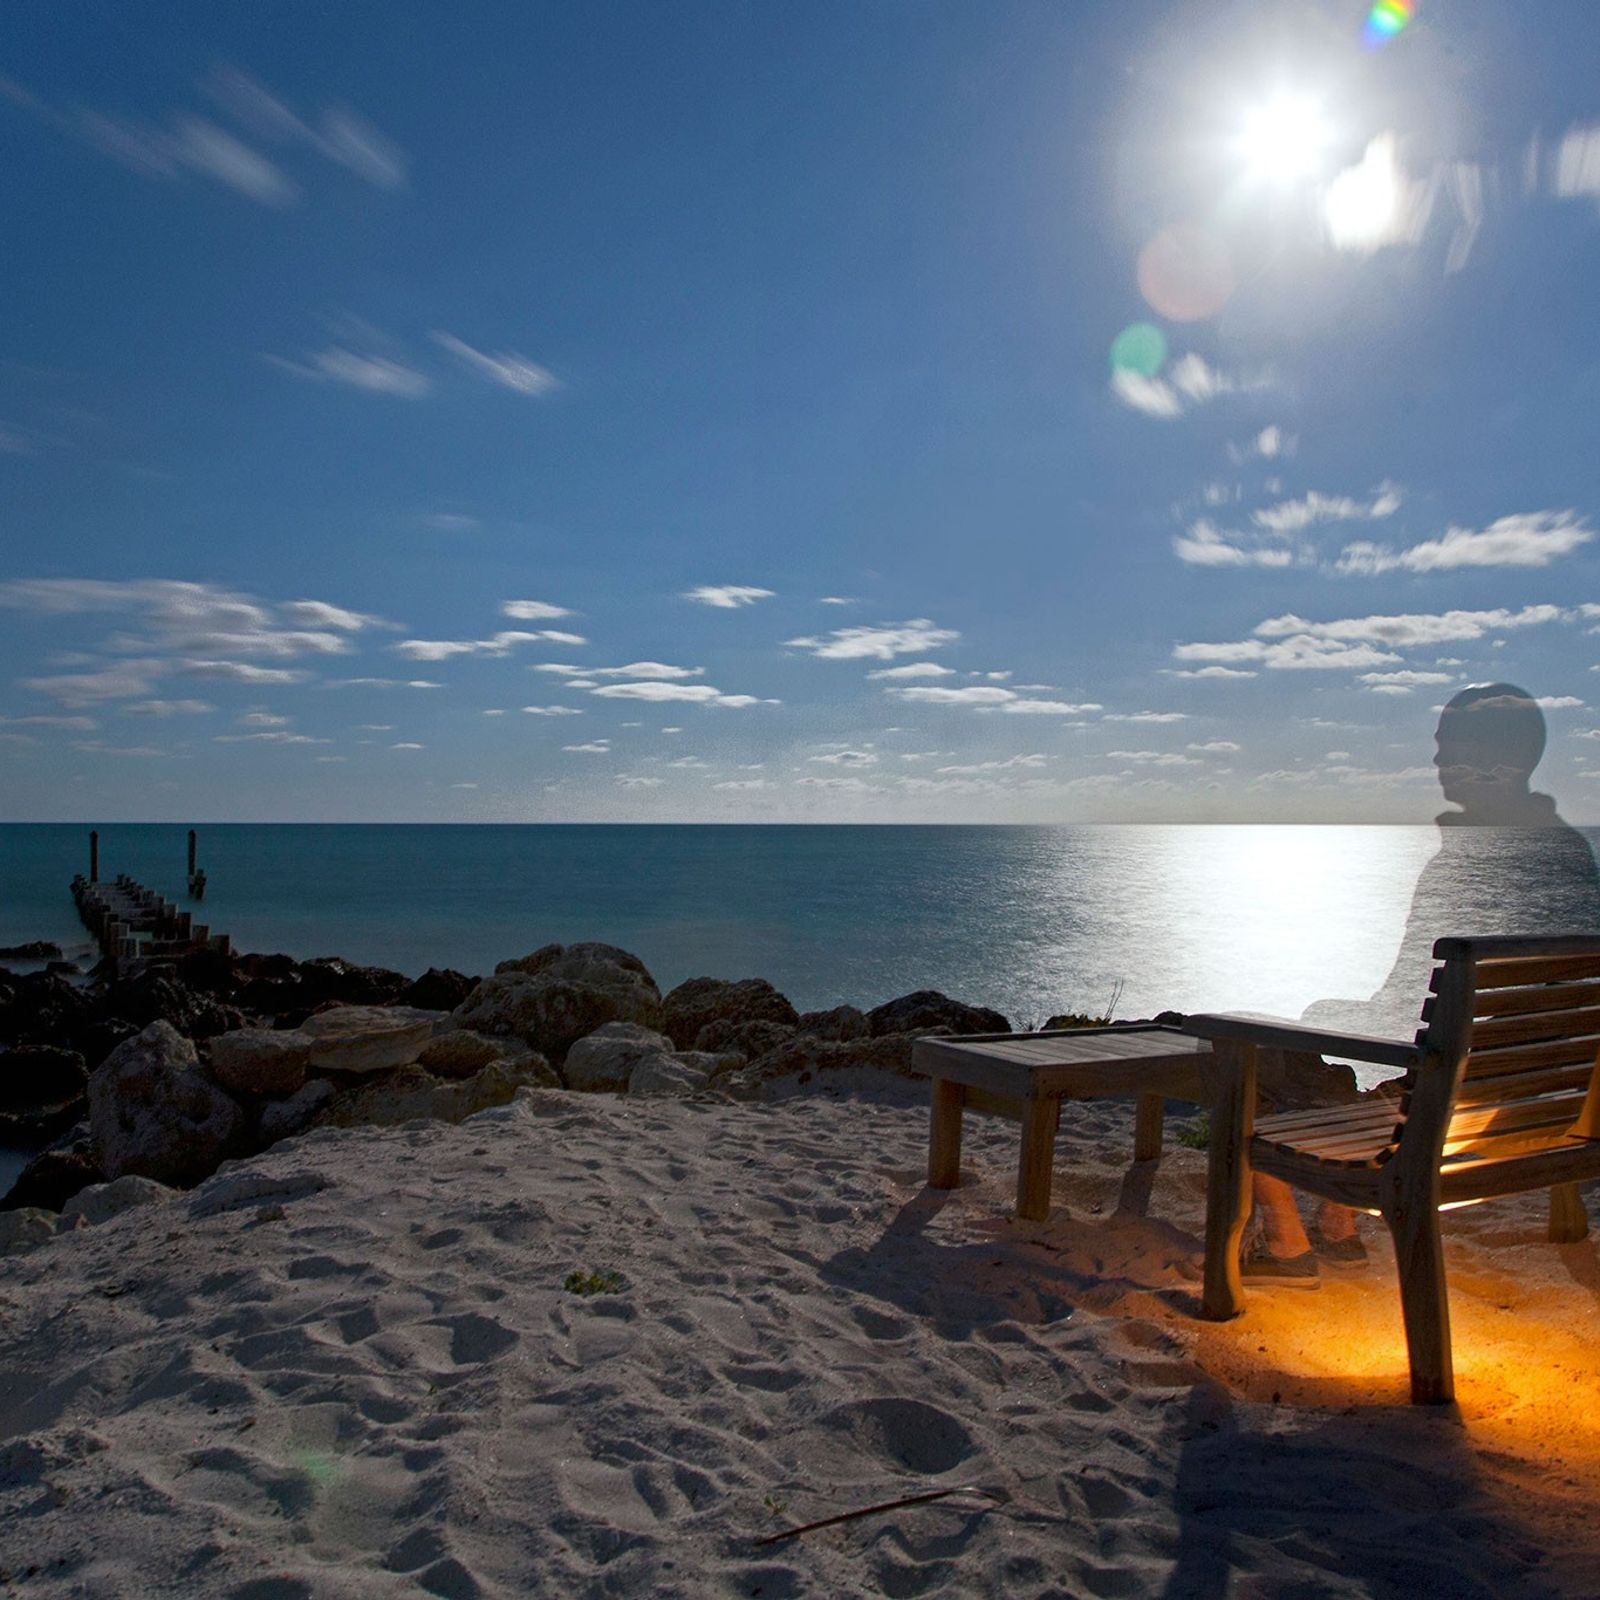 A long-exposure photograph shows a ghost-like image of a man sitting at a beach in the ...